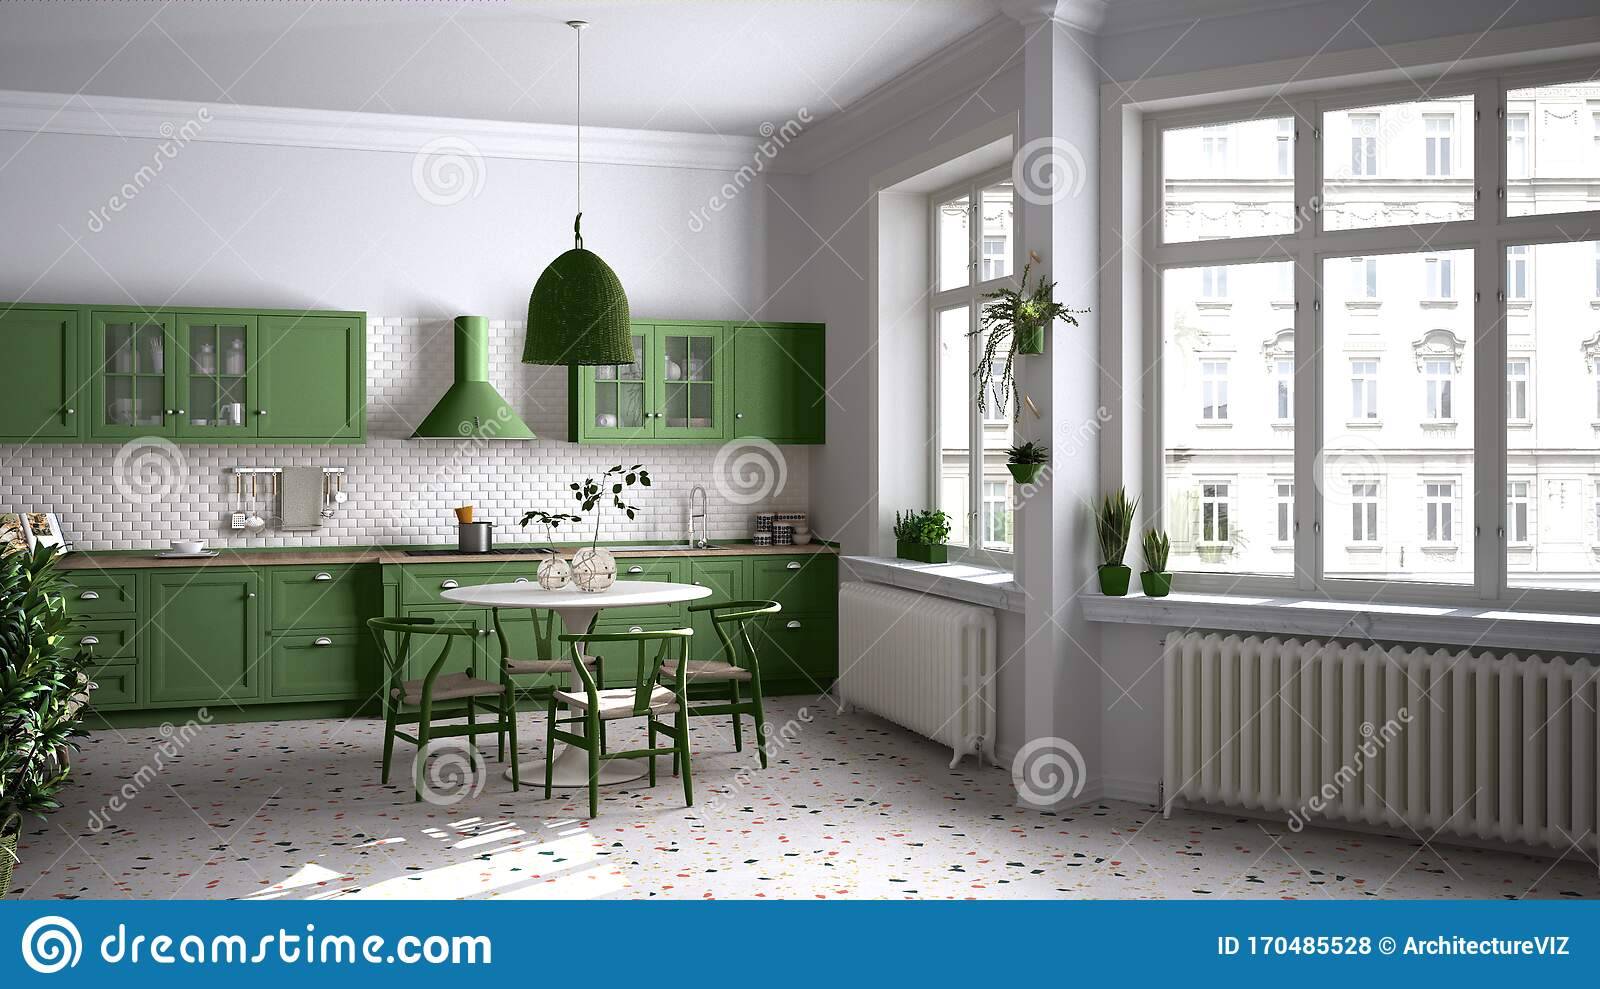 Retro White And Green Vintage Kitchen With Terrazzo Marble Floor Panoramic Windows Dining Room Round Table With Wooden Chairs Stock Illustration Illustration Of Furniture Eclectic 170485528